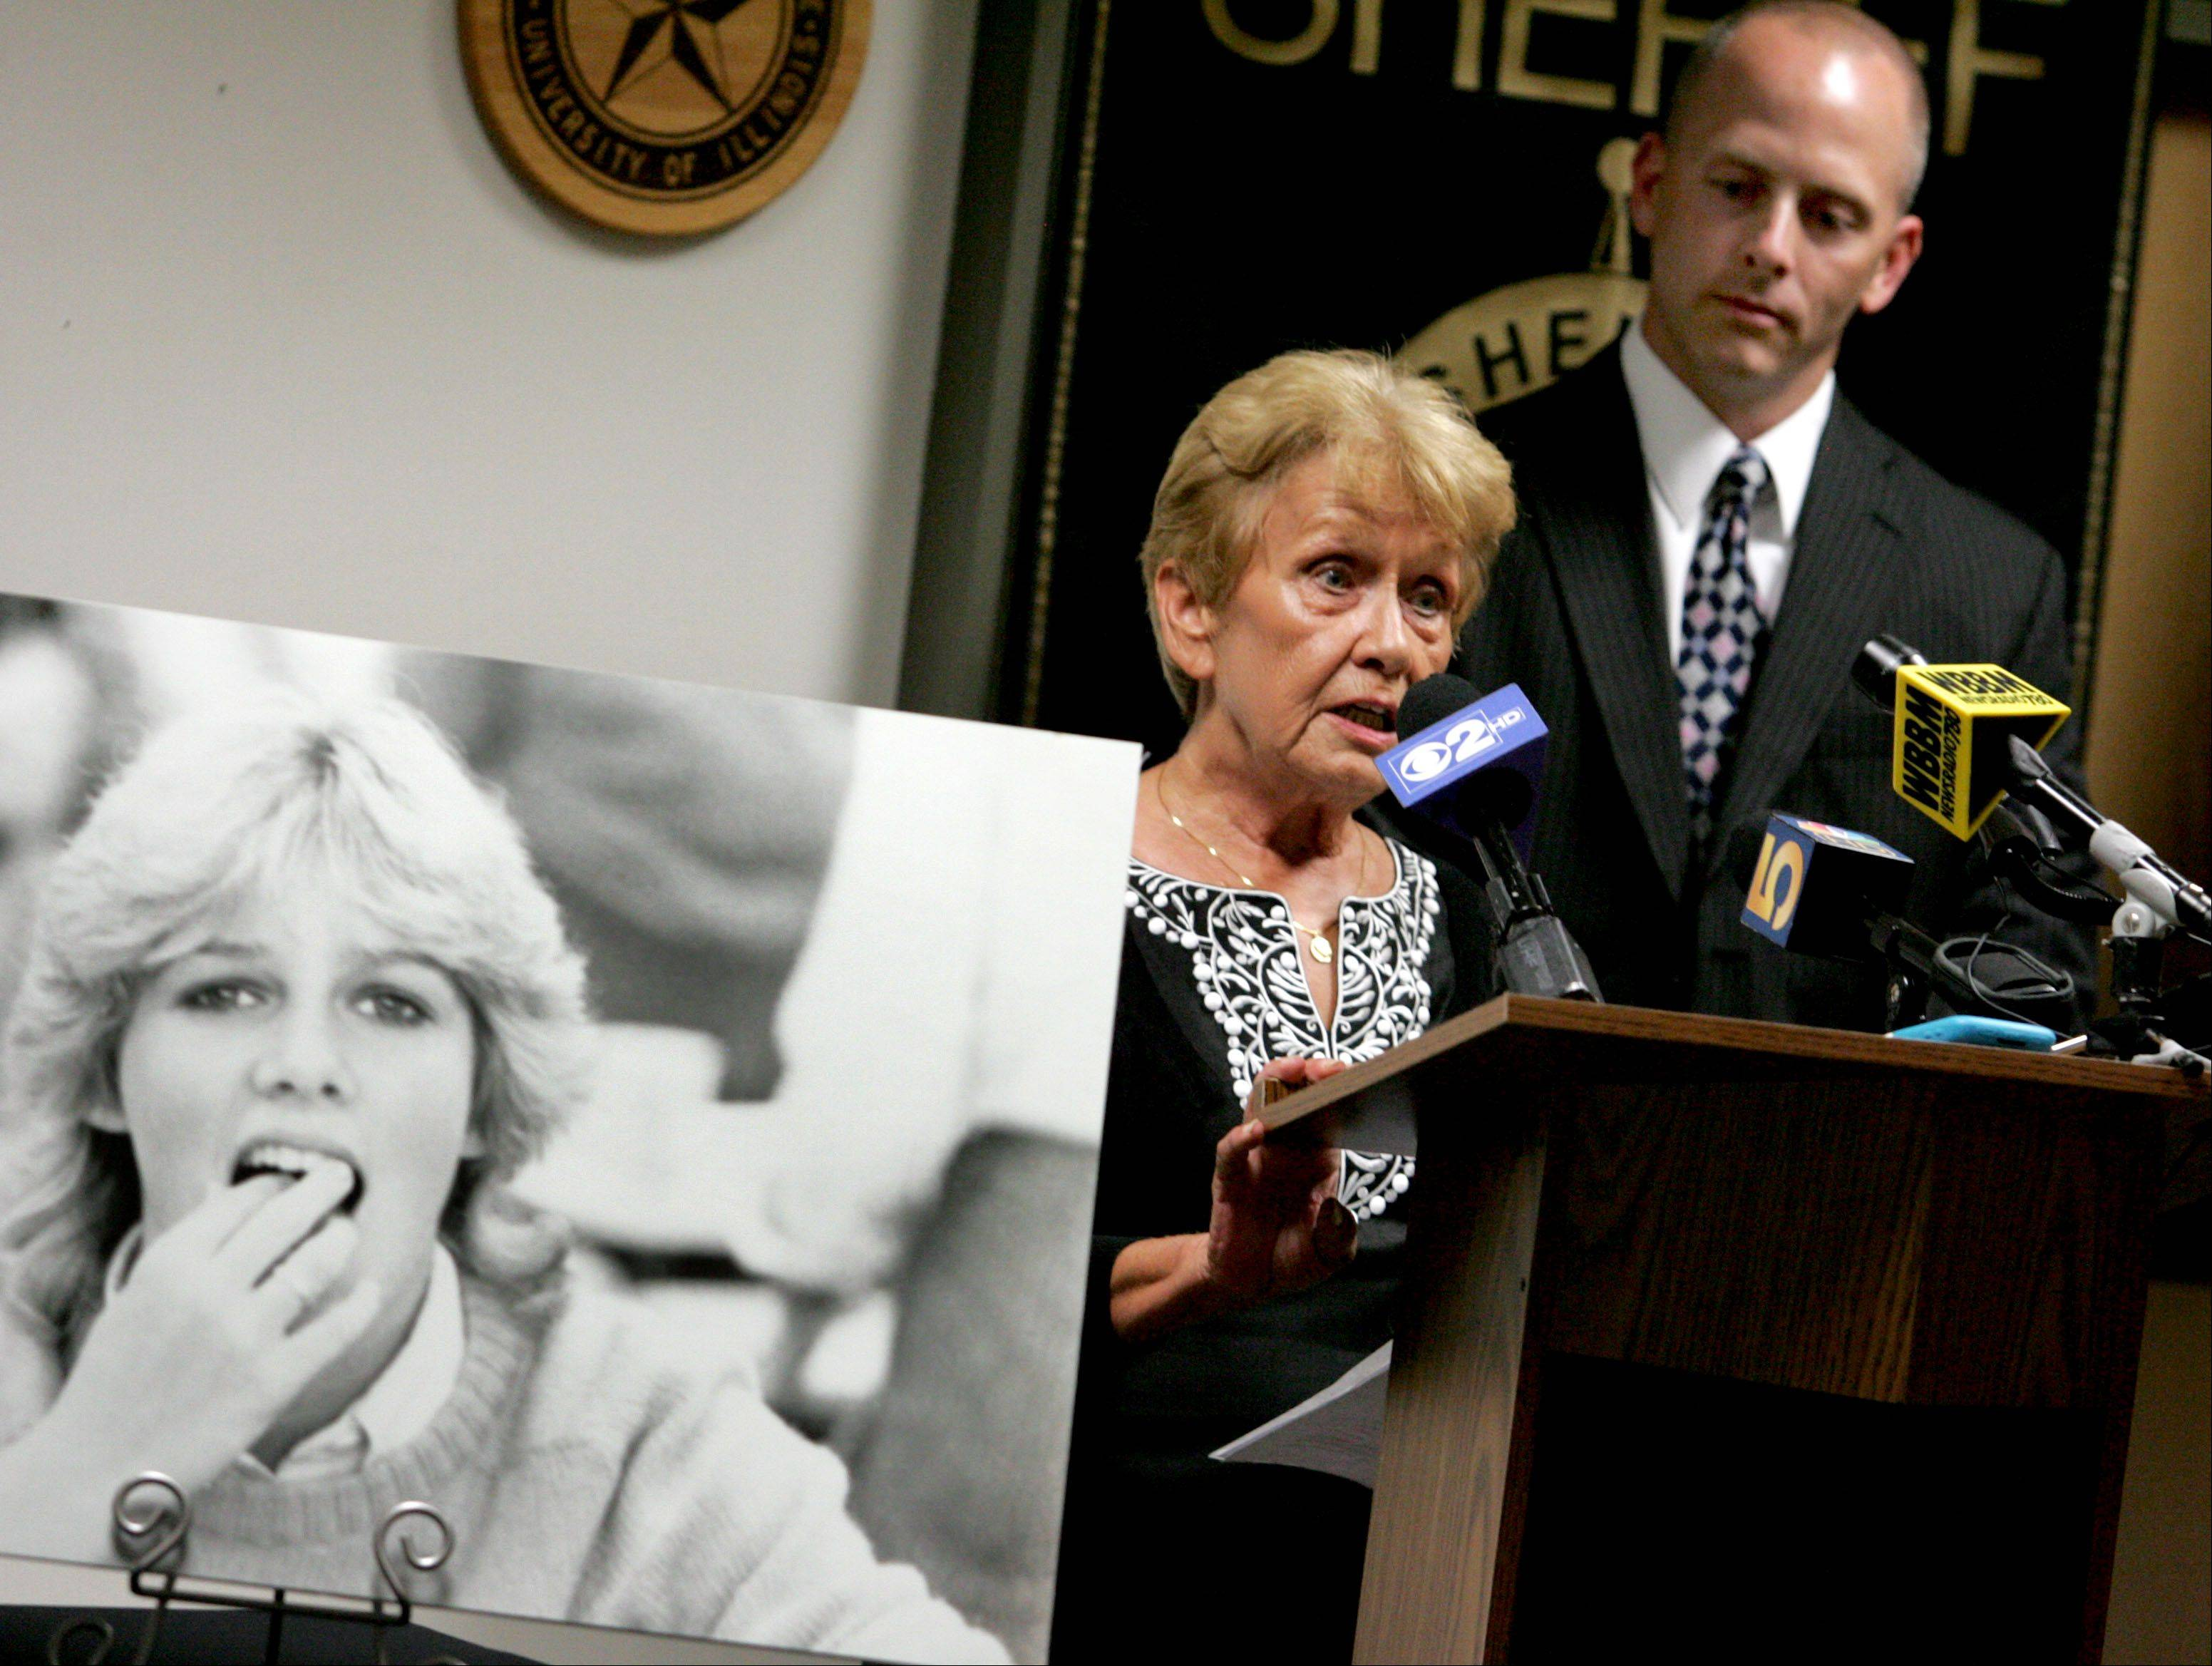 Sandy Wesselman speaks at a news conference at the DuPage County sheriff's office in Wheaton about new strategies in the investigation of her daughter Kristy's murder 26 years ago near Glen Ellyn. On the right is Sgt. Robert Harris.